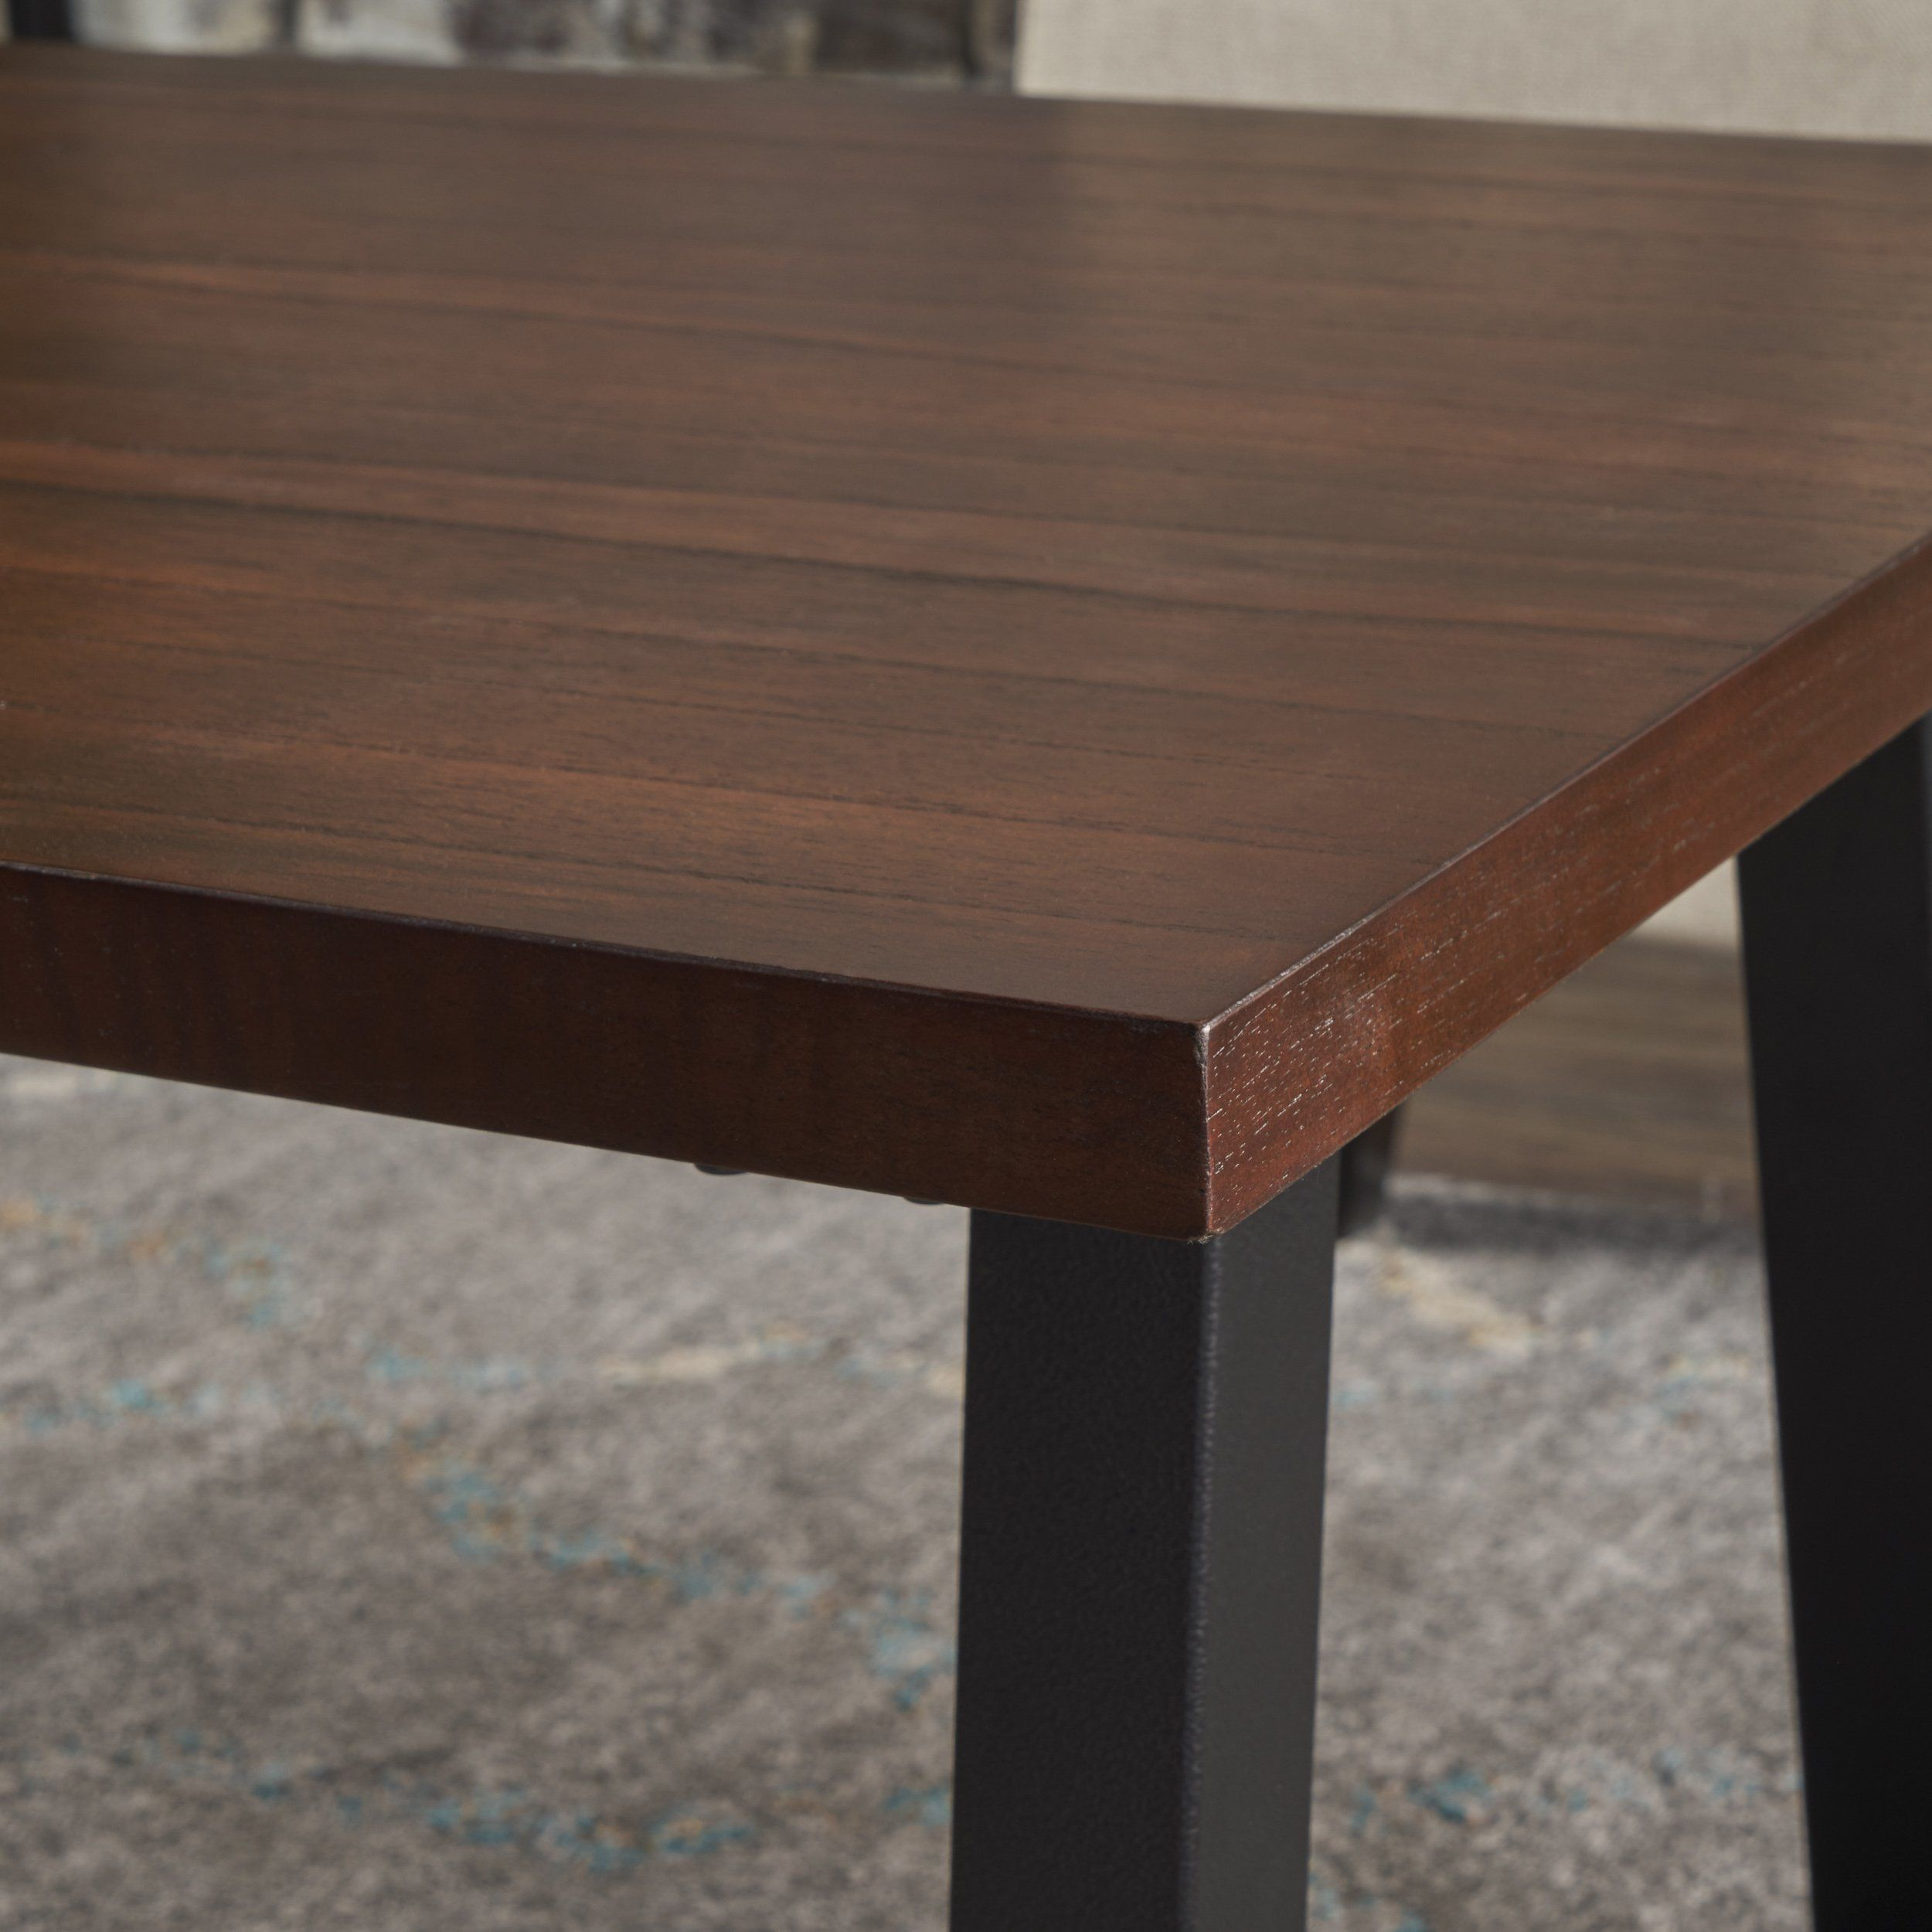 Perlestl Coffee Table Industrial Modern Wood Engineered Wood Overlaid With Chinaberry Veneer Make Sure To Look Into This Incre Coffee Table Table Faux Wood [ 2500 x 2500 Pixel ]